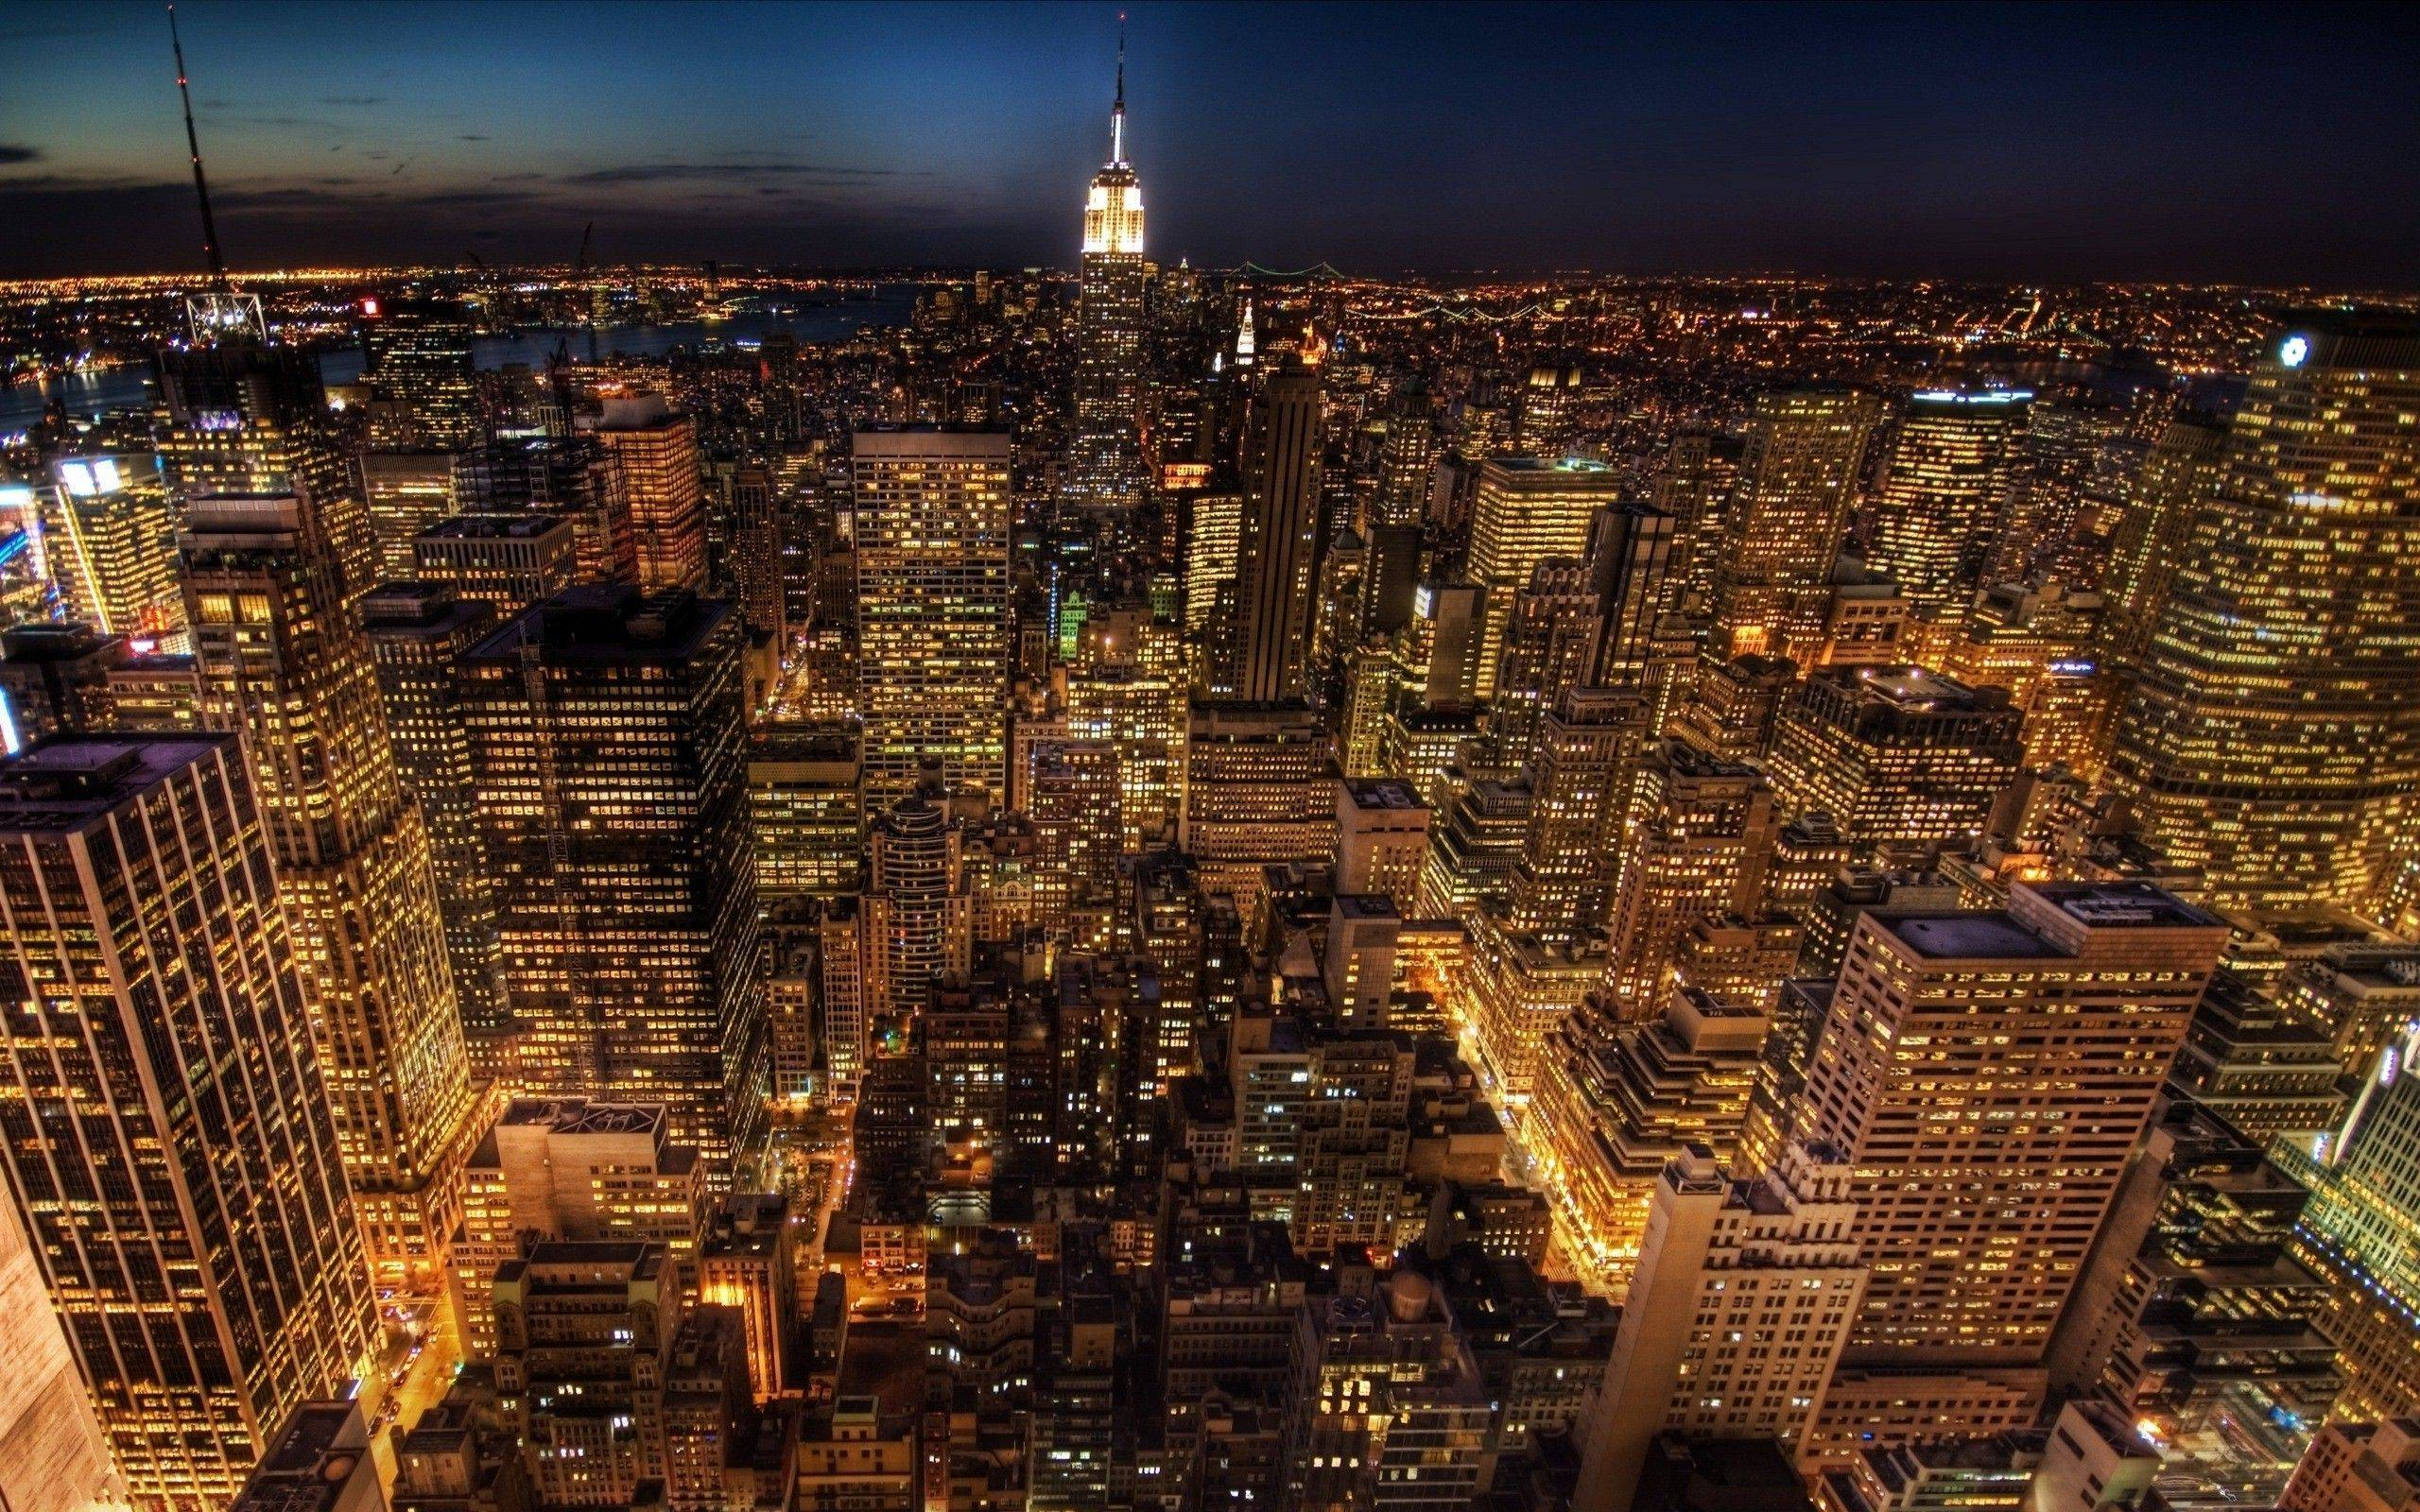 nyc at night wallpapers - wallpaper cave